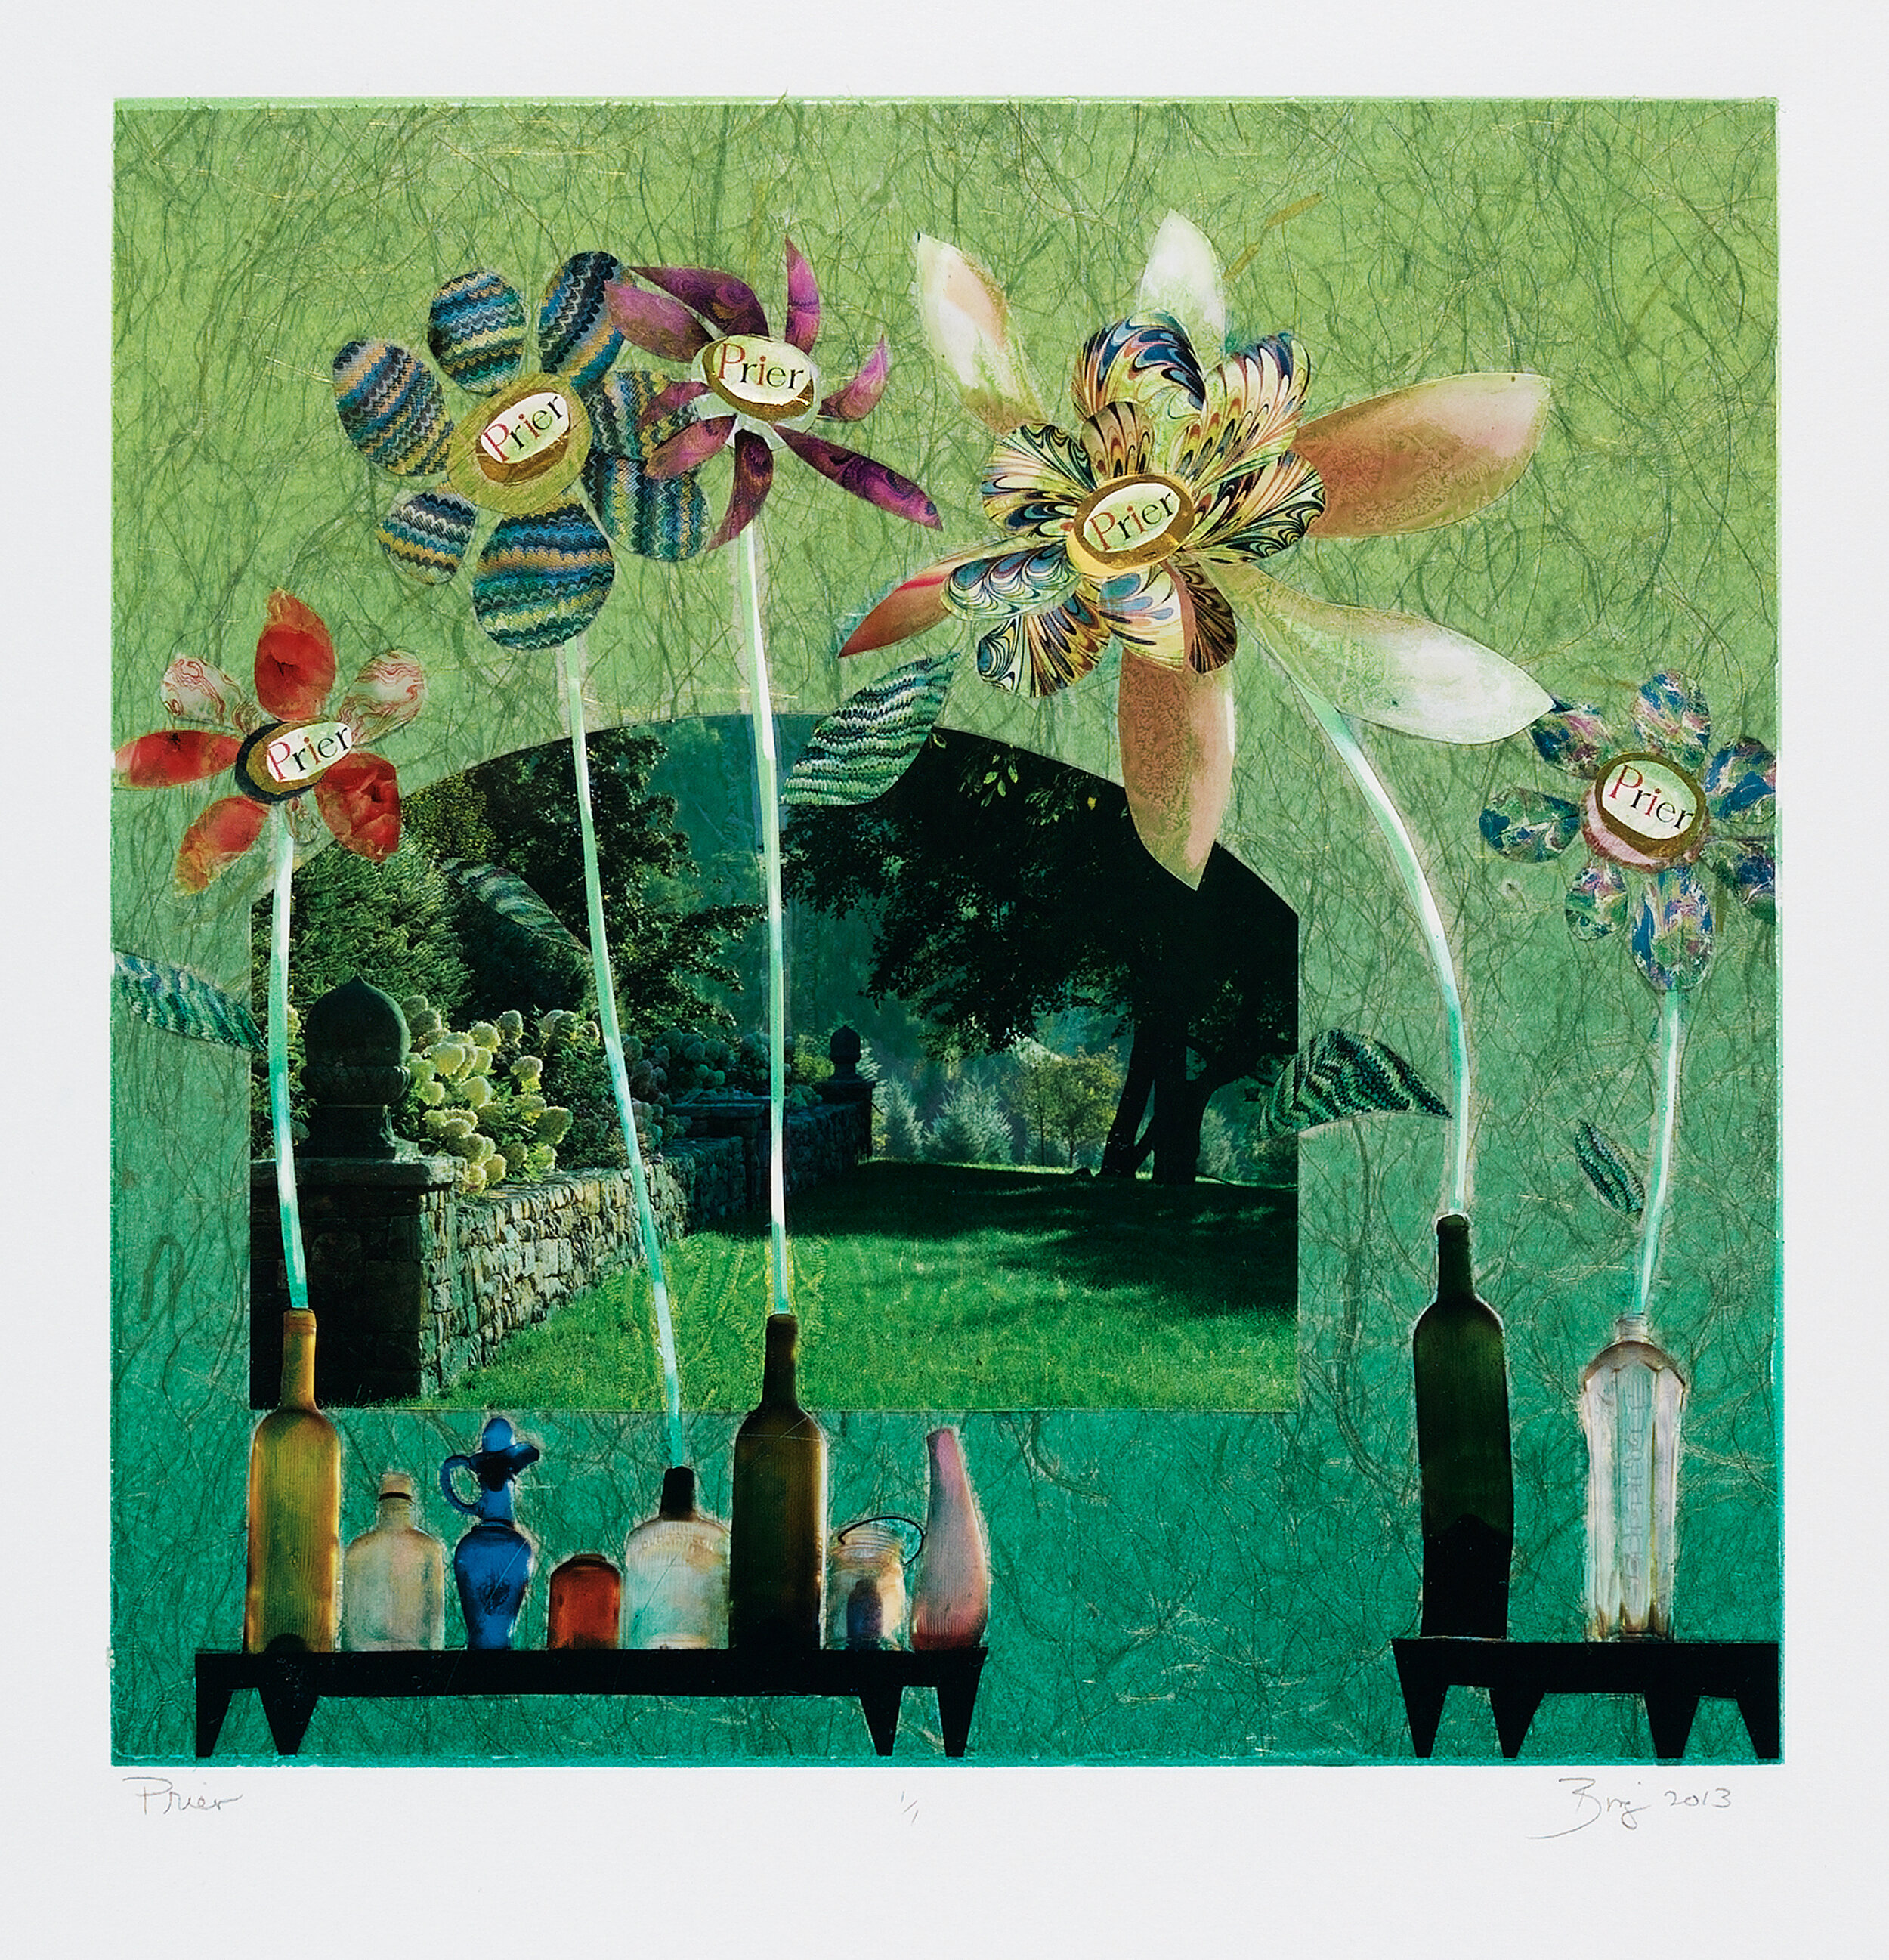 Monotype collage-like print of a green room with tables, flowers and a window